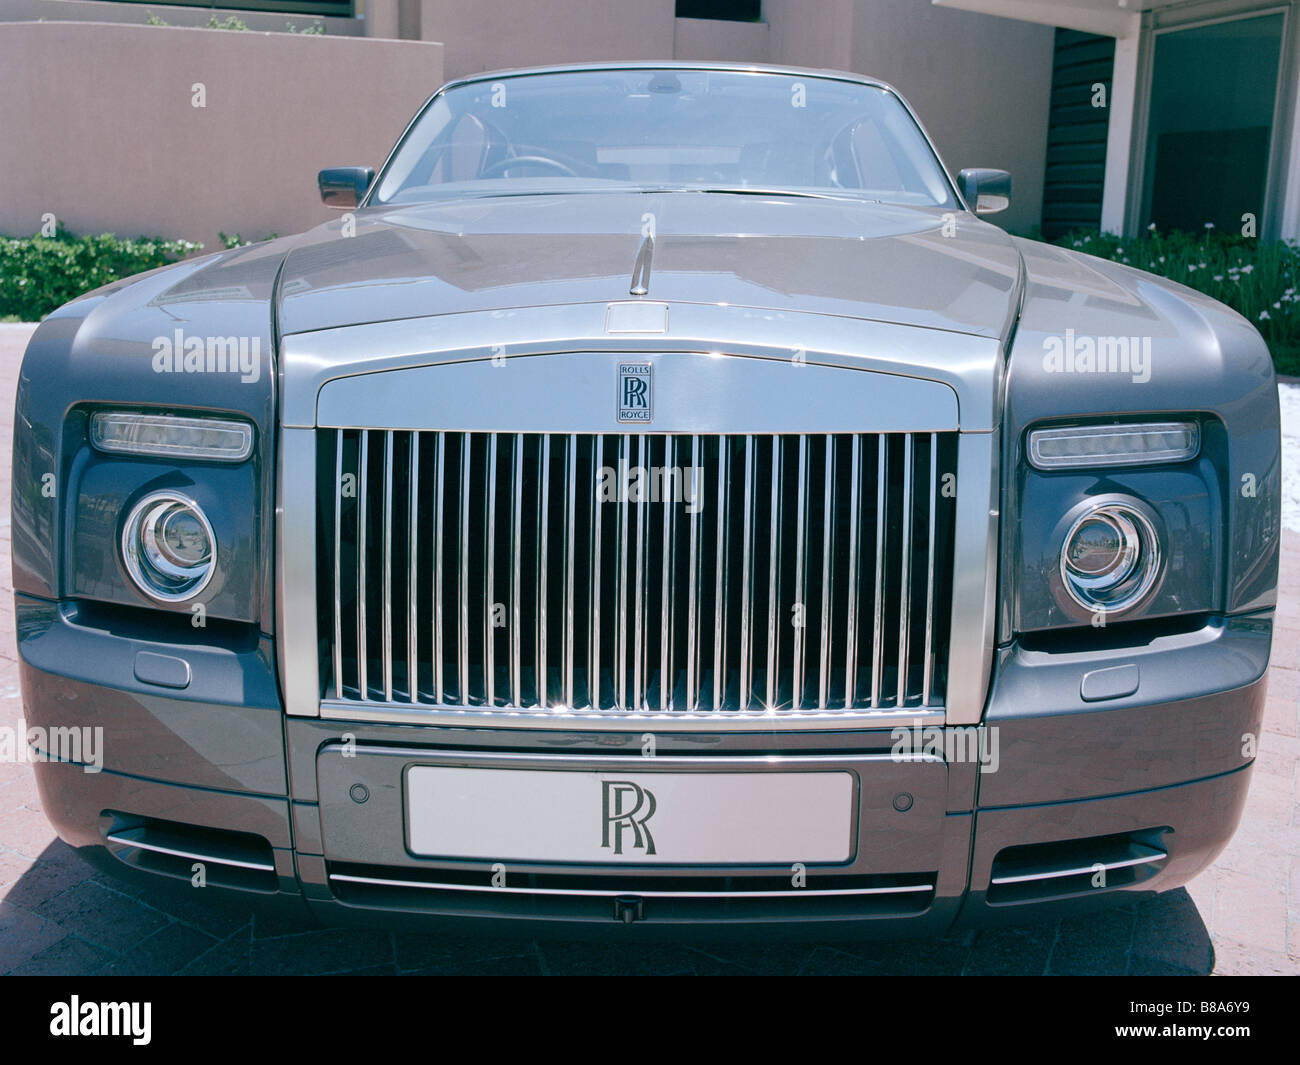 Rolls Royce Car in Cape Town in South Africa in Sub Saharan Africa. Wealth Wealthy Rich Life Lifestyle - Stock Image